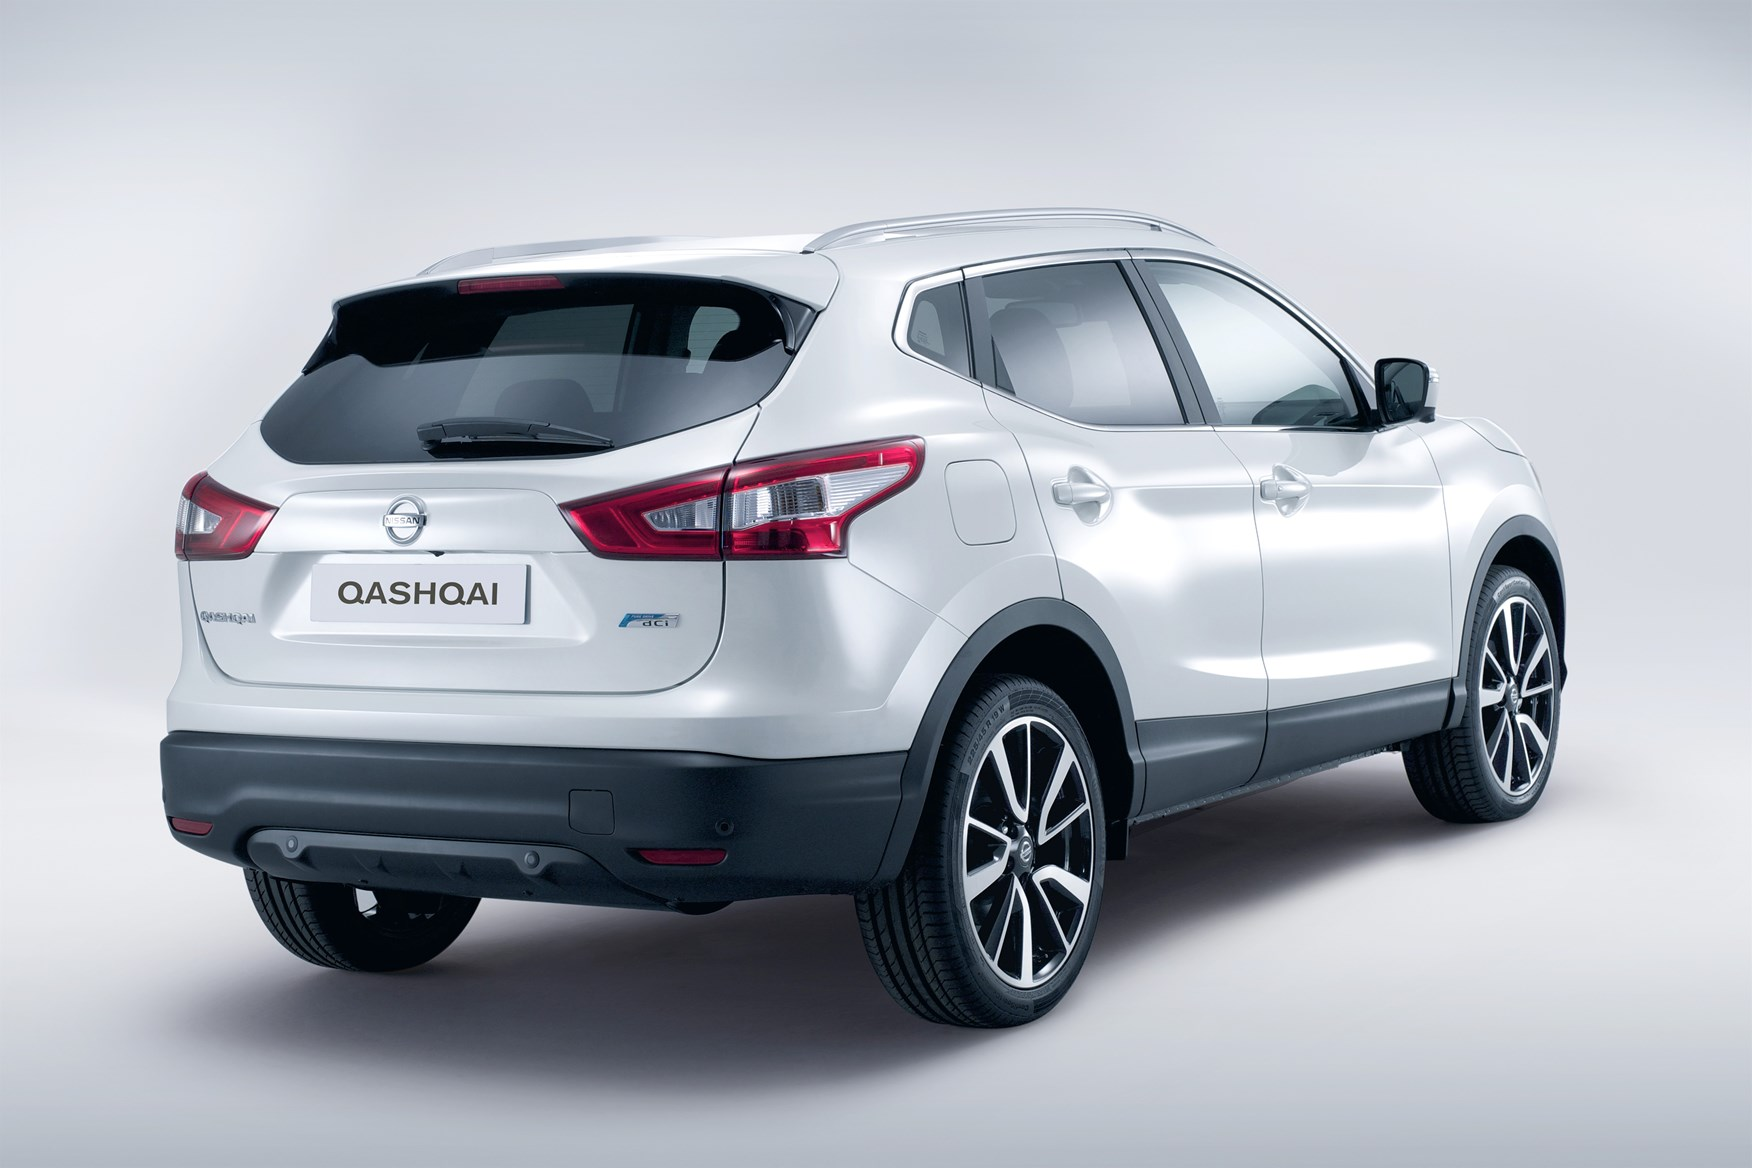 nissan qashqai station wagon review 2014 parkers. Black Bedroom Furniture Sets. Home Design Ideas